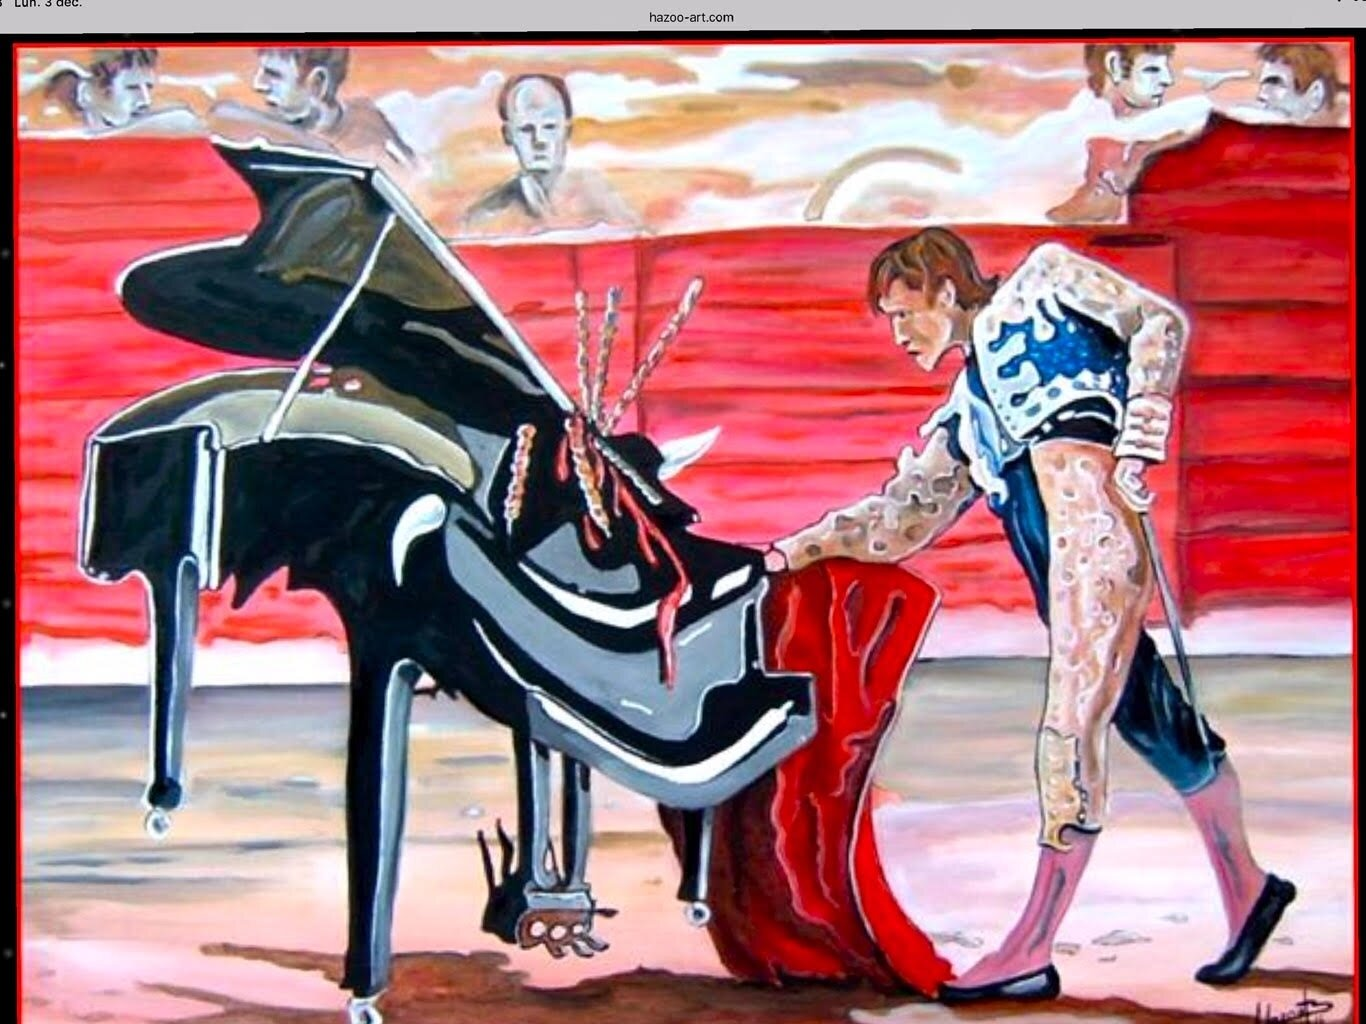 CONCERTO.....huile sur toile by Hazoo!